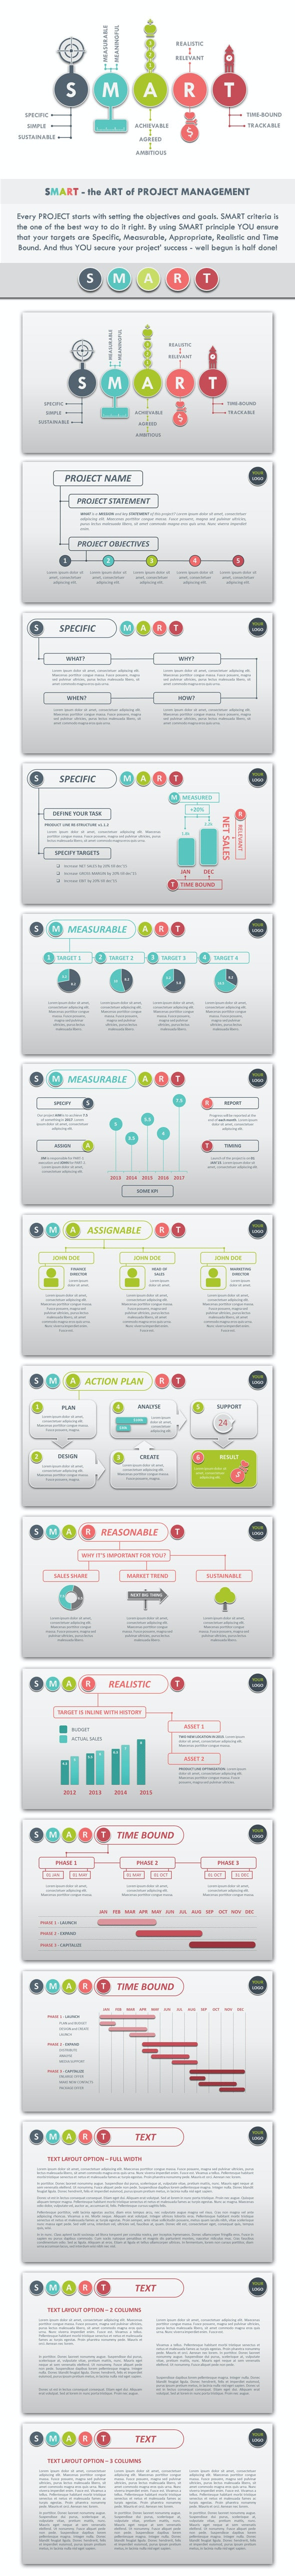 SMART001 Project Management PowerPoint Template - Business PowerPoint Templates